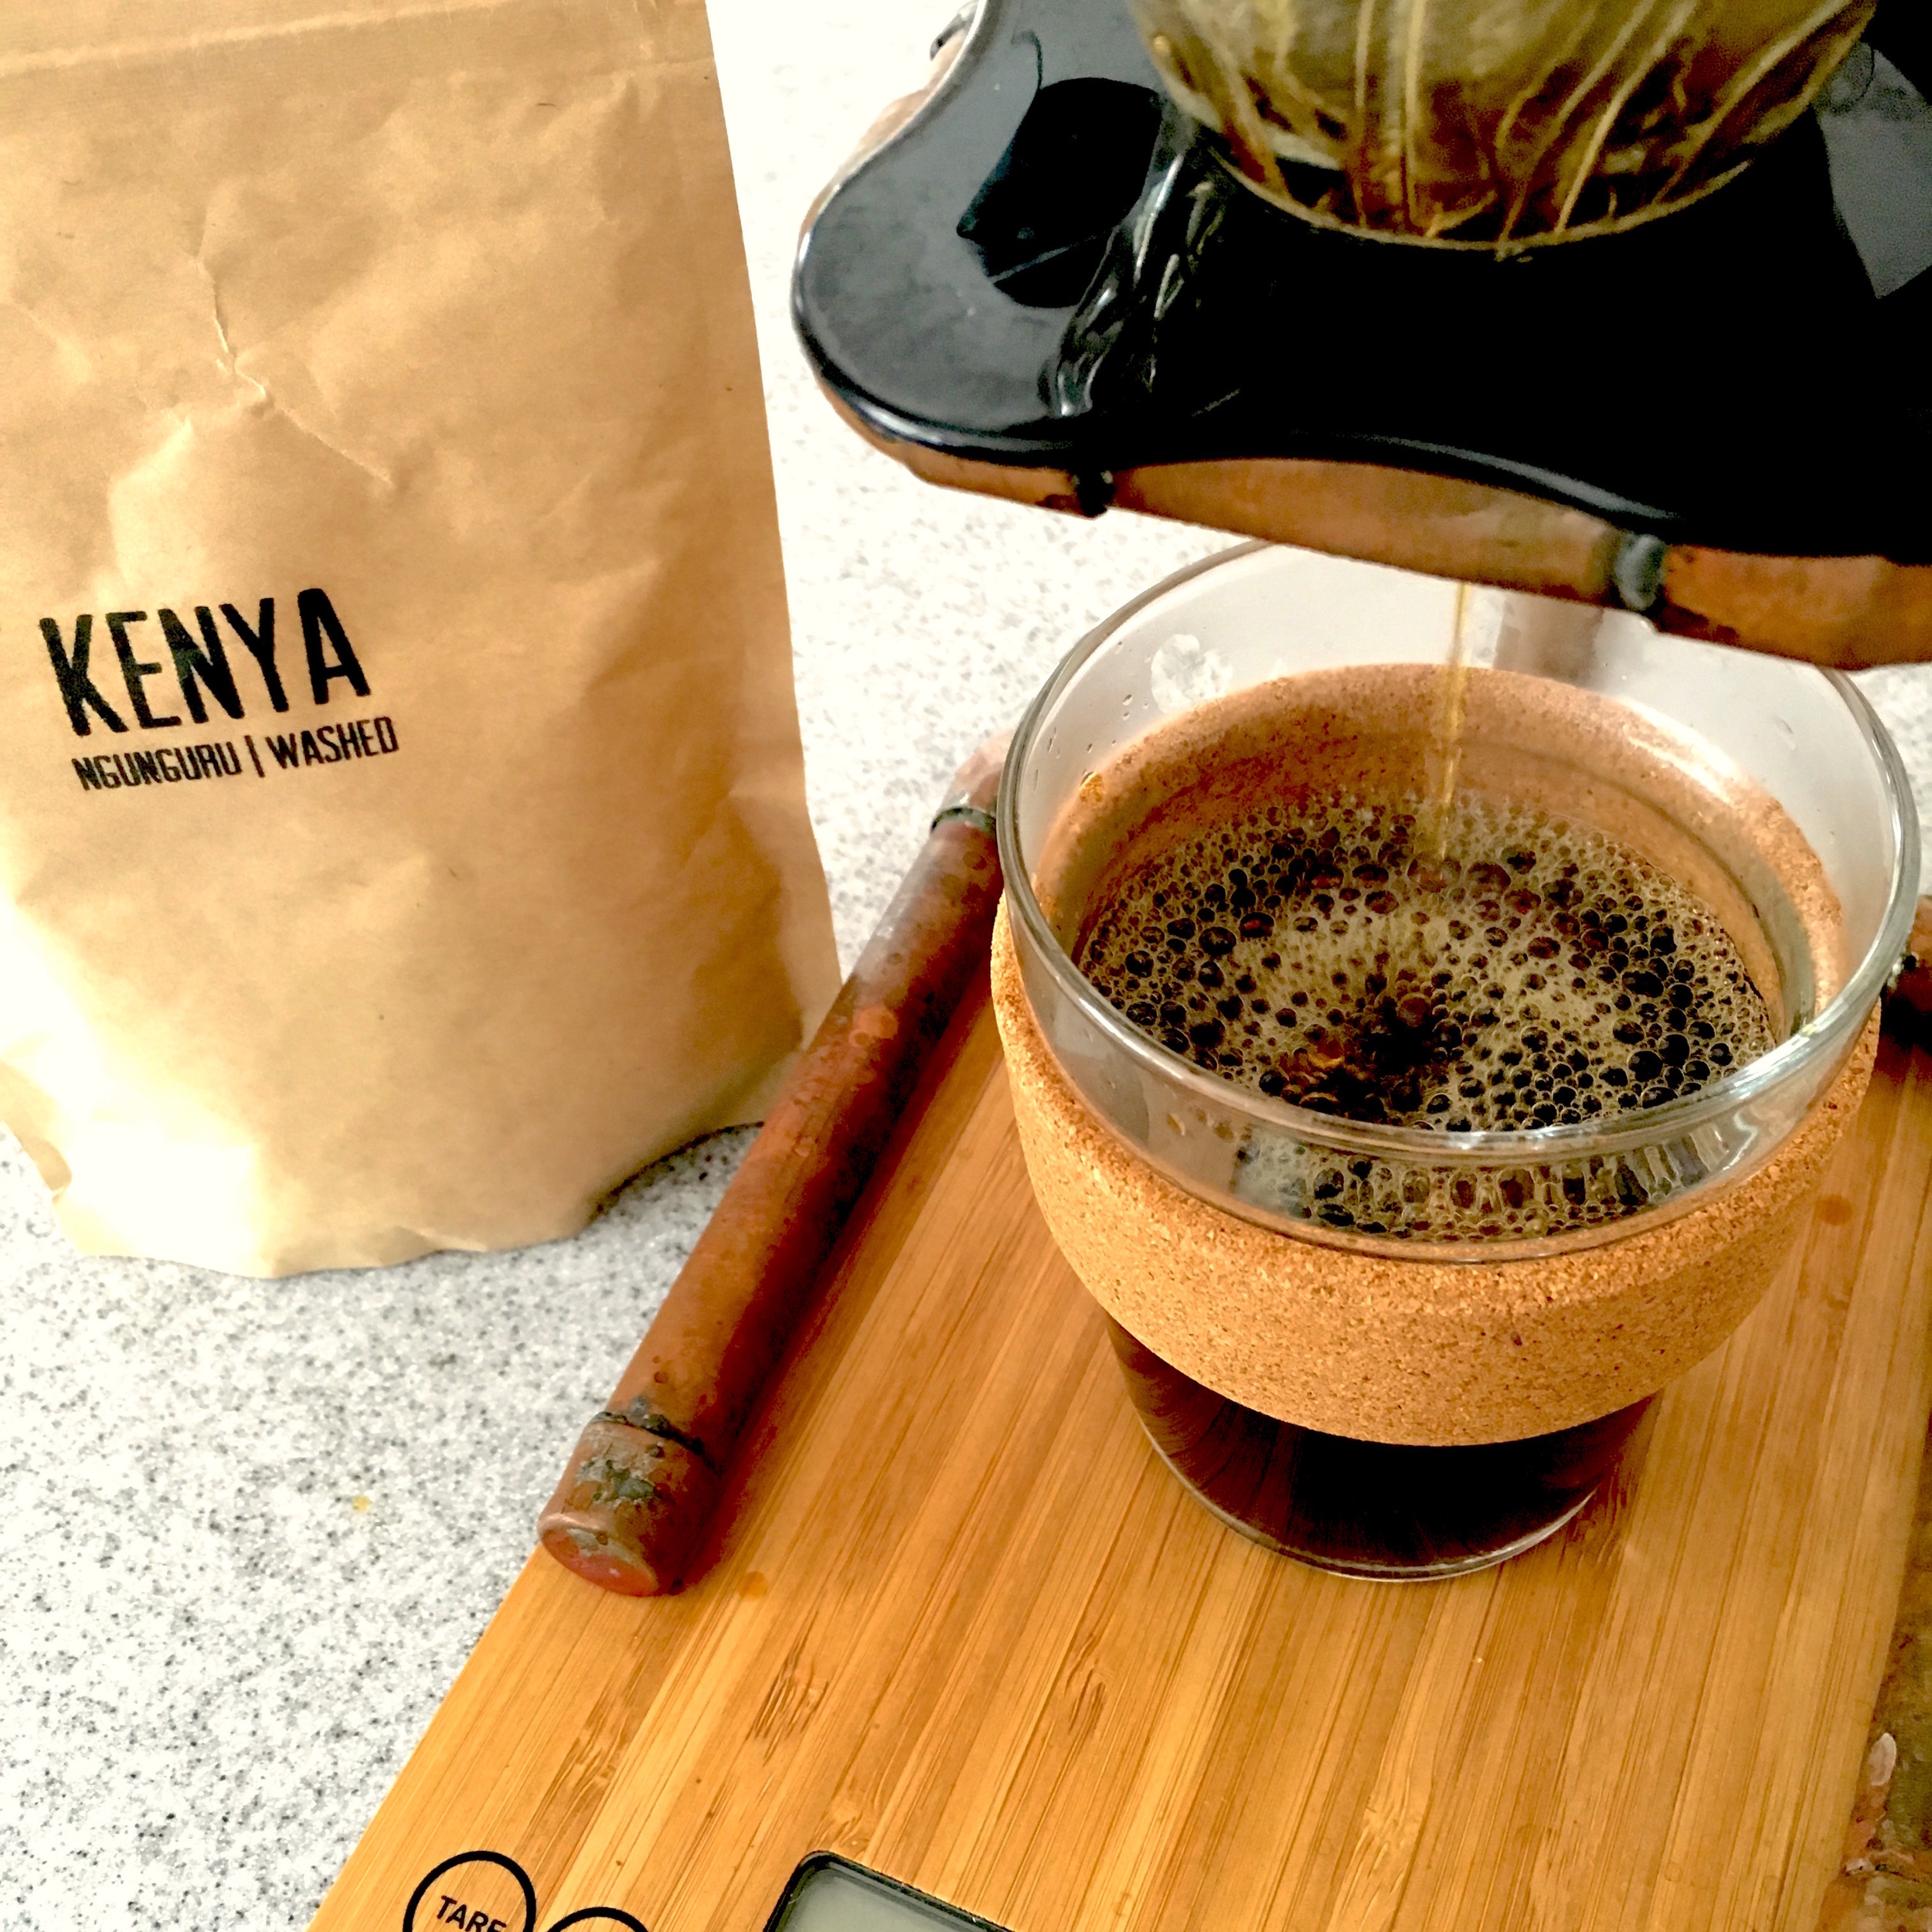 Coffee Yield With Hario V60 Pour Over Method